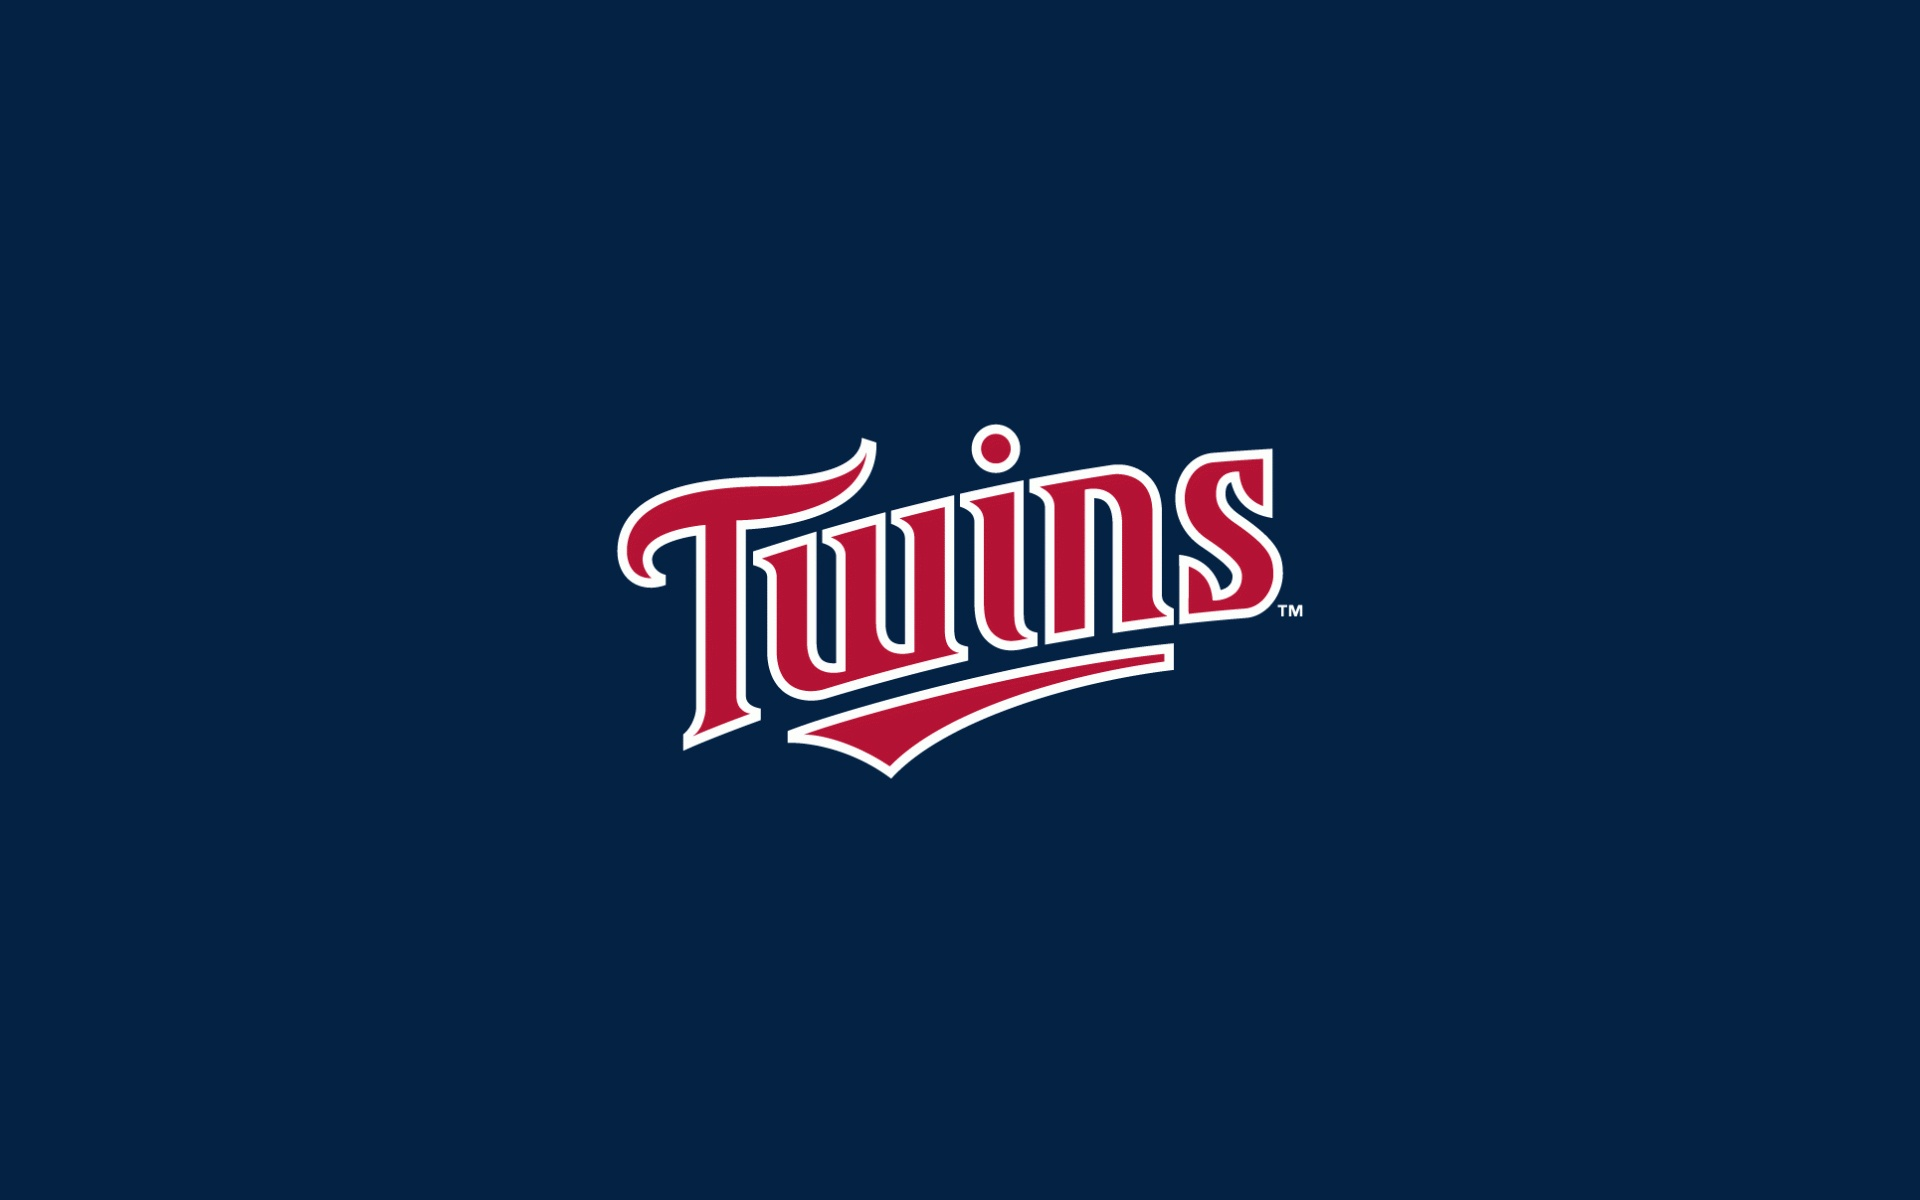 MINNESOTA TWINS mlb baseball 11 wallpaper 1920x1200 232149 1920x1200